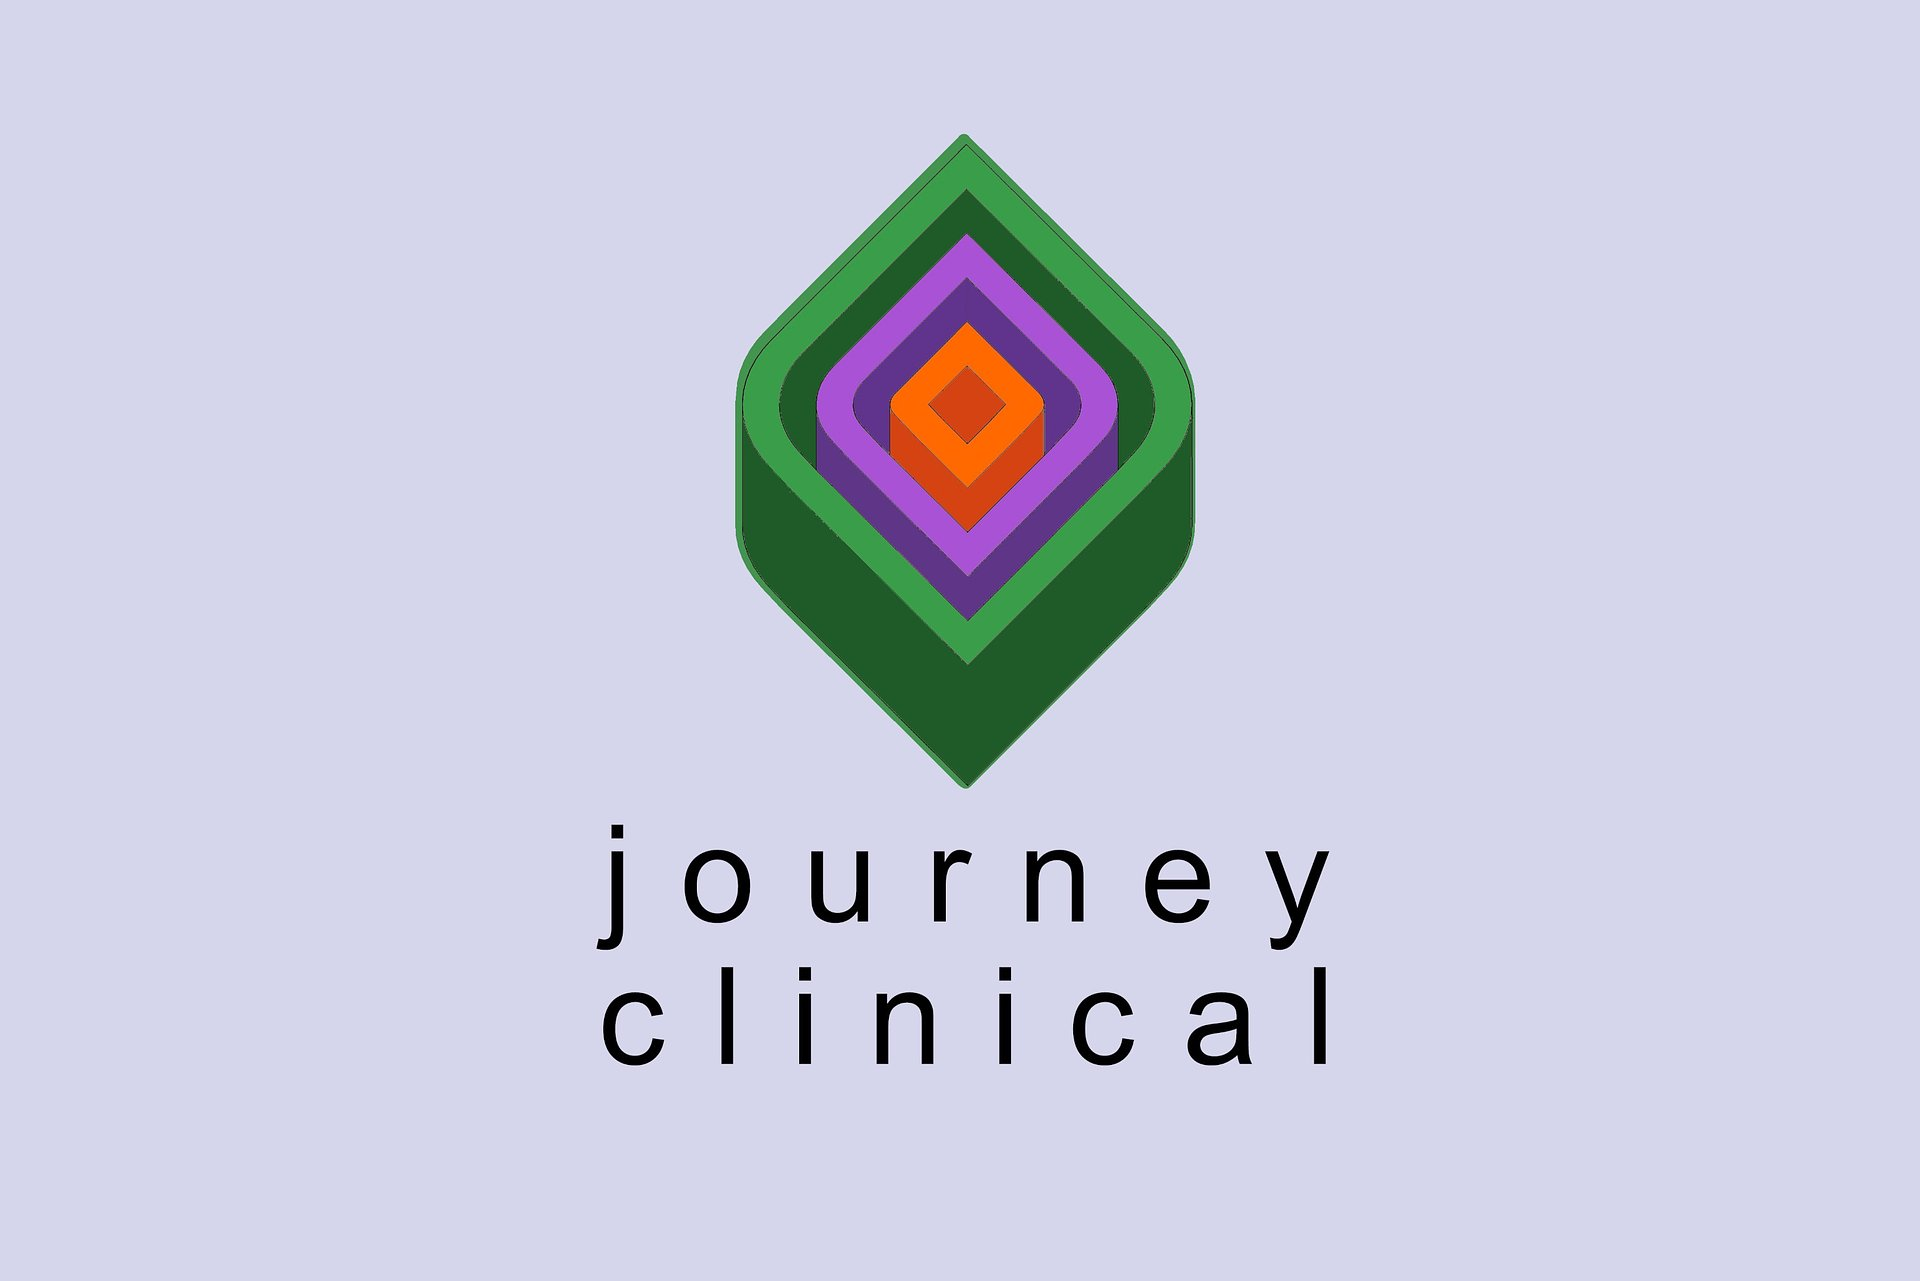 Journey Clinical Launches Ketamine Prescription Service to Empower Independent Psychotherapists